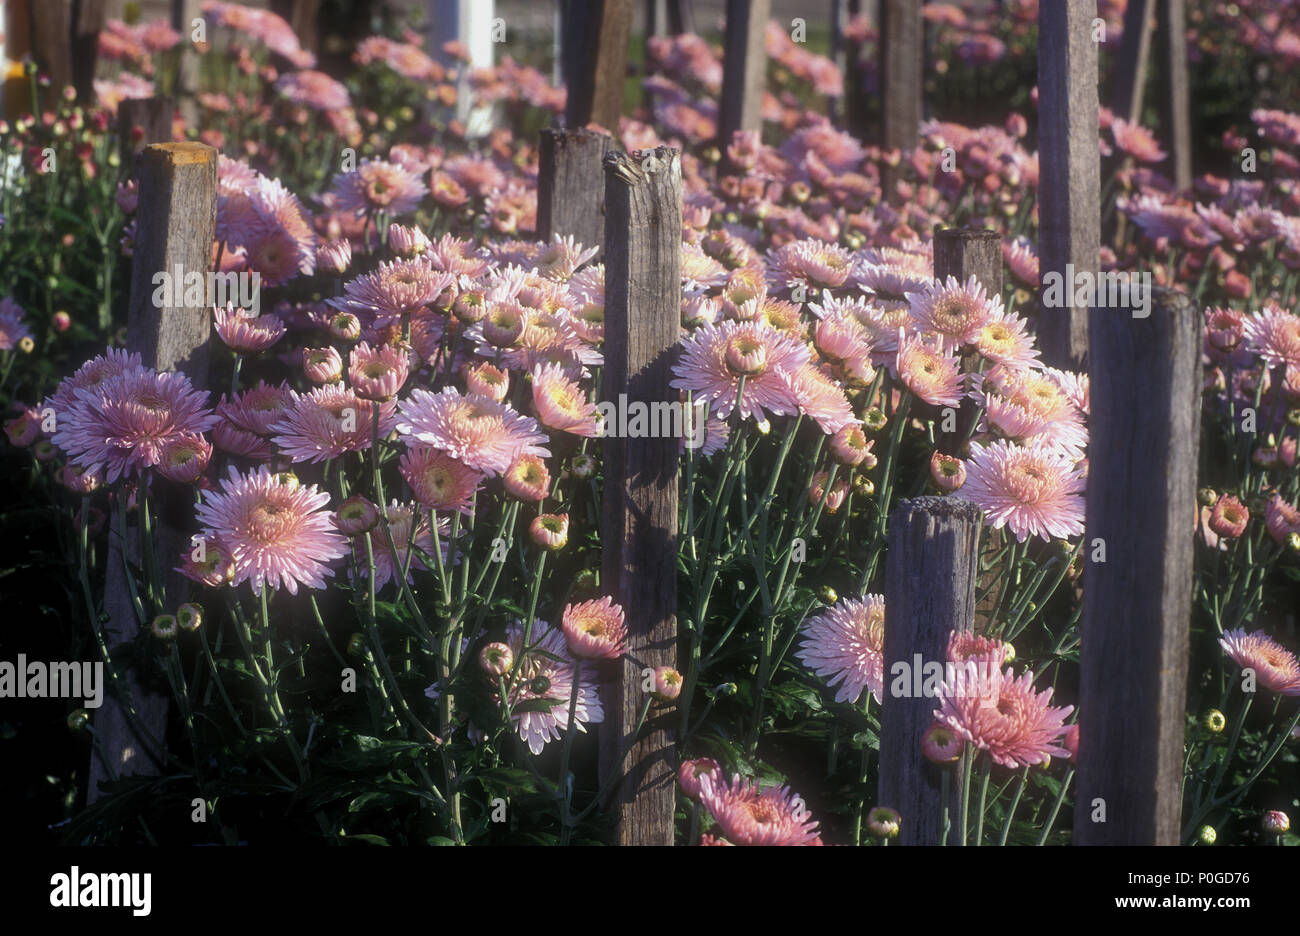 PINK CHRYSANTHEMUMS GROWING SUPPORTED BY WOODEN GARDEN STAKES, NEW SOUTH  WALES, AUSTRALIA